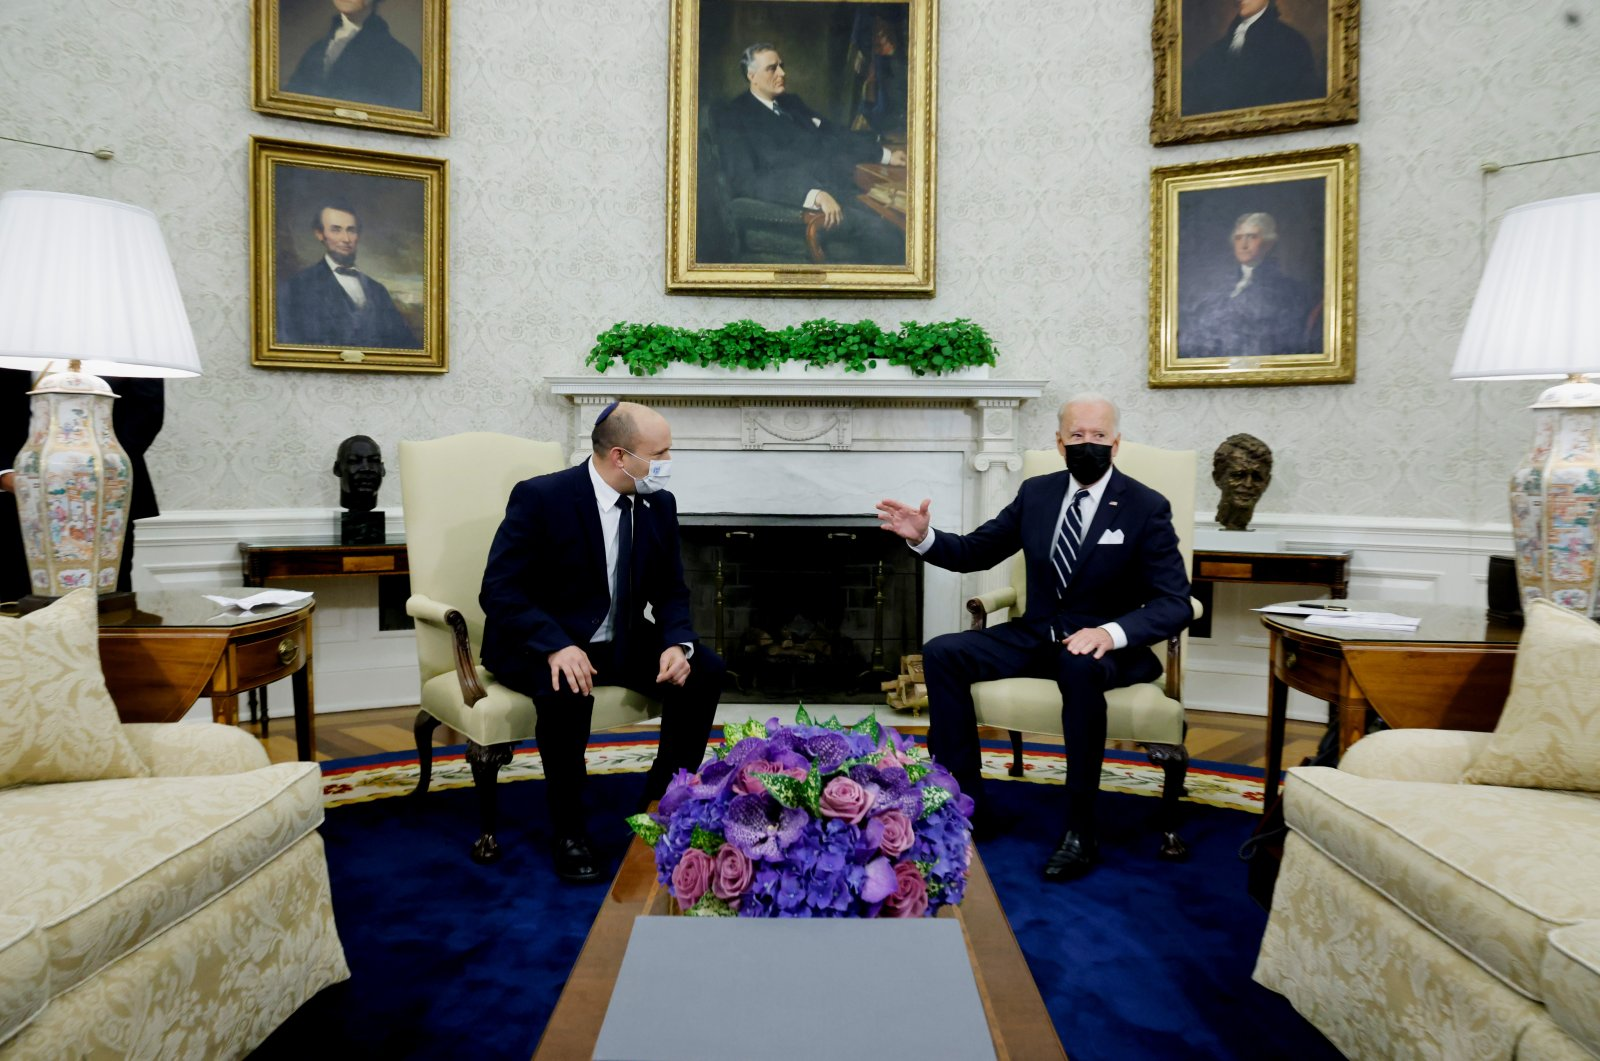 U.S. President Joe Biden and Israel's Prime Minister Naftali Bennett chat during a meeting in the Oval Office at the White House in Washington, D.C., U.S., Aug. 27, 2021. (Reuters Photo)